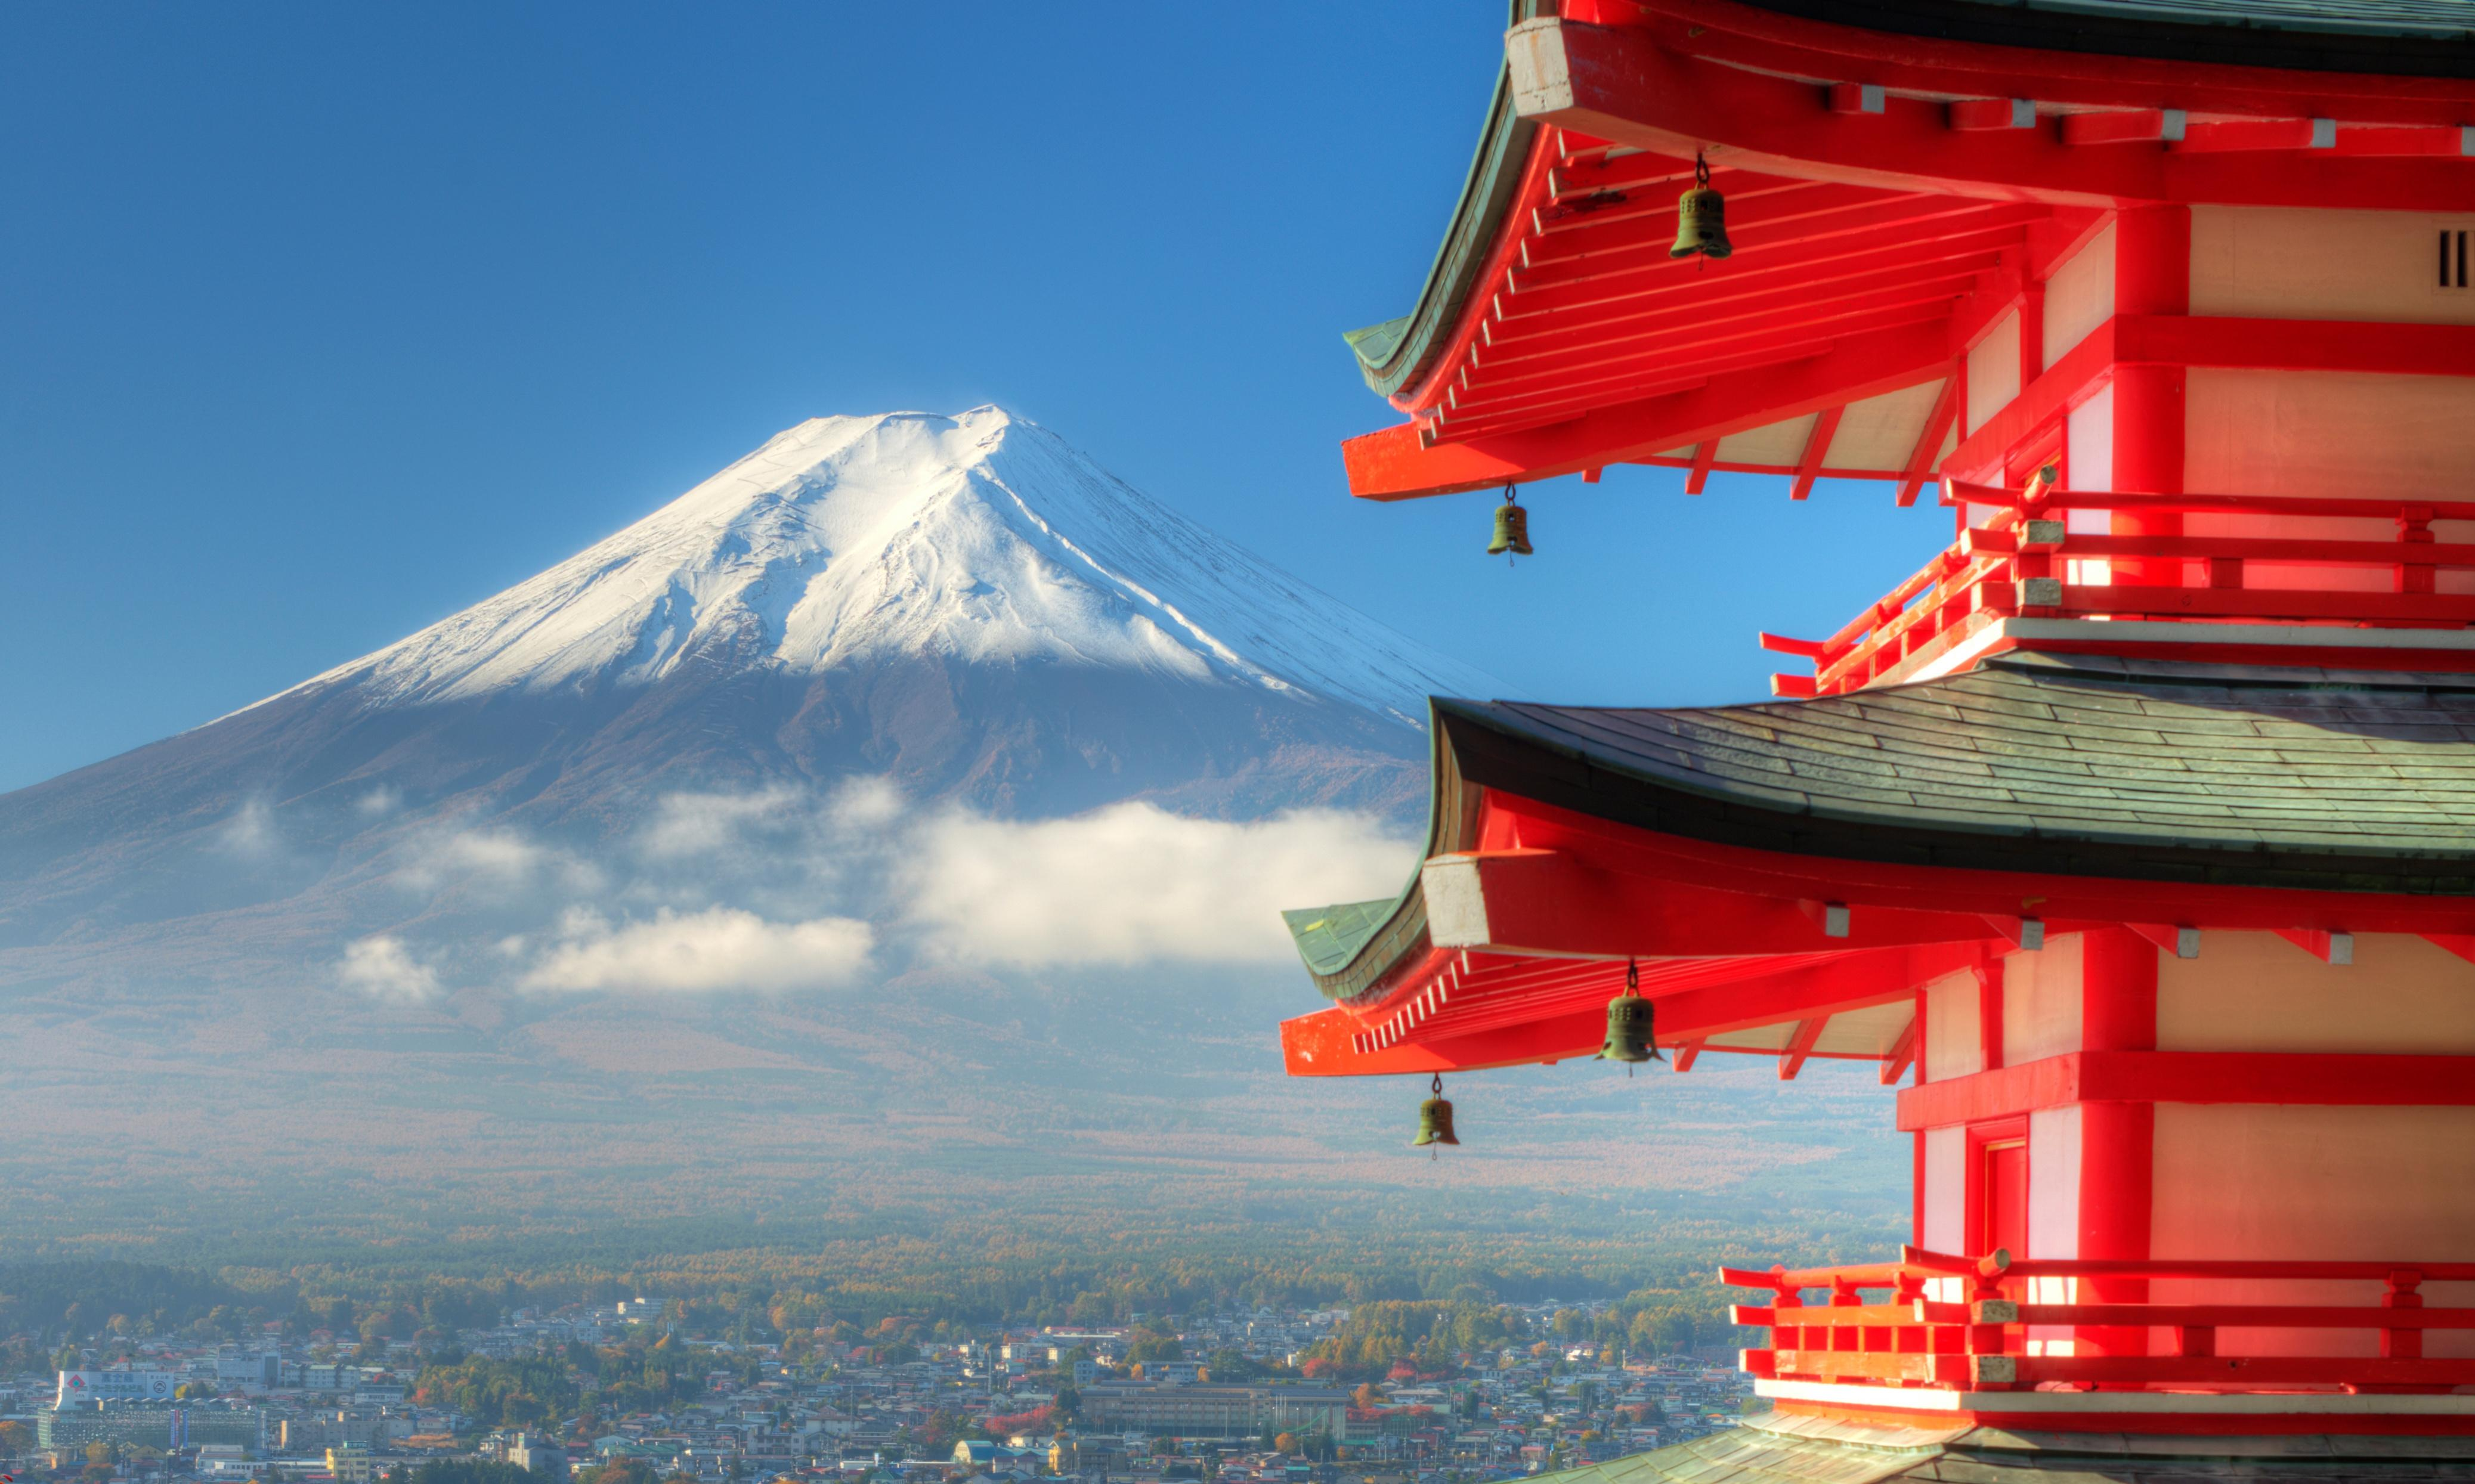 In the footsteps of Hokusai on Mount Fuji